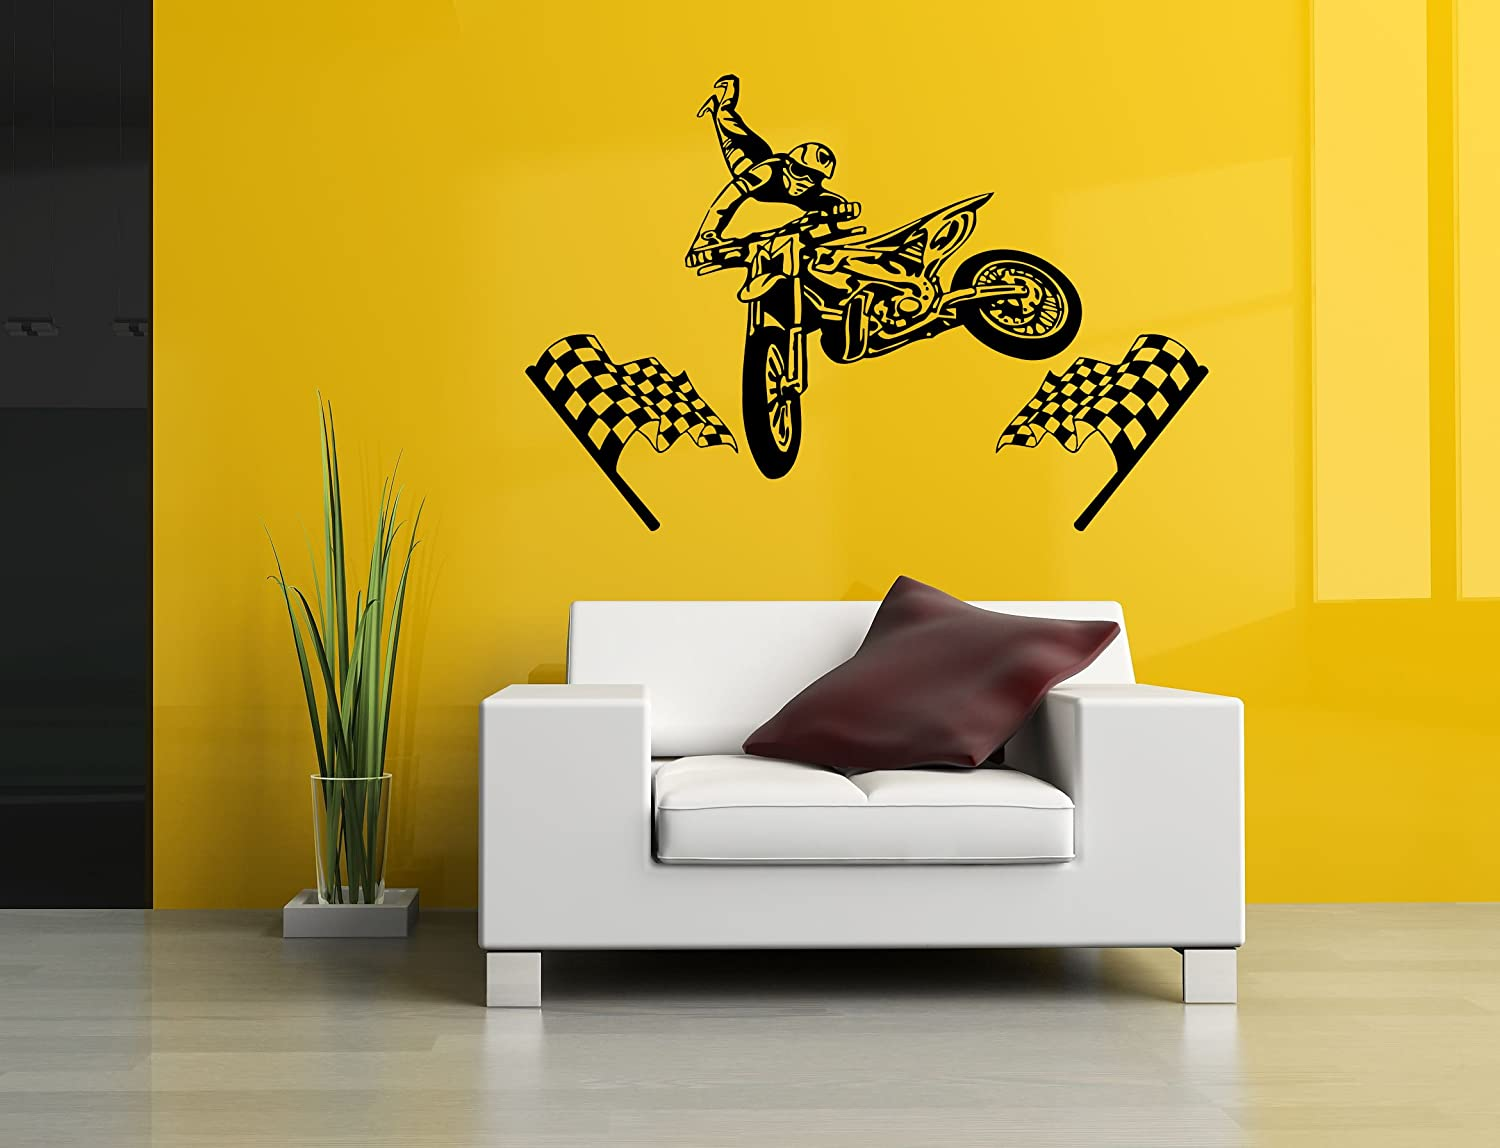 Amazon.com: Removable Vinyl Sticker Mural Decal Wall Decor Poster ...